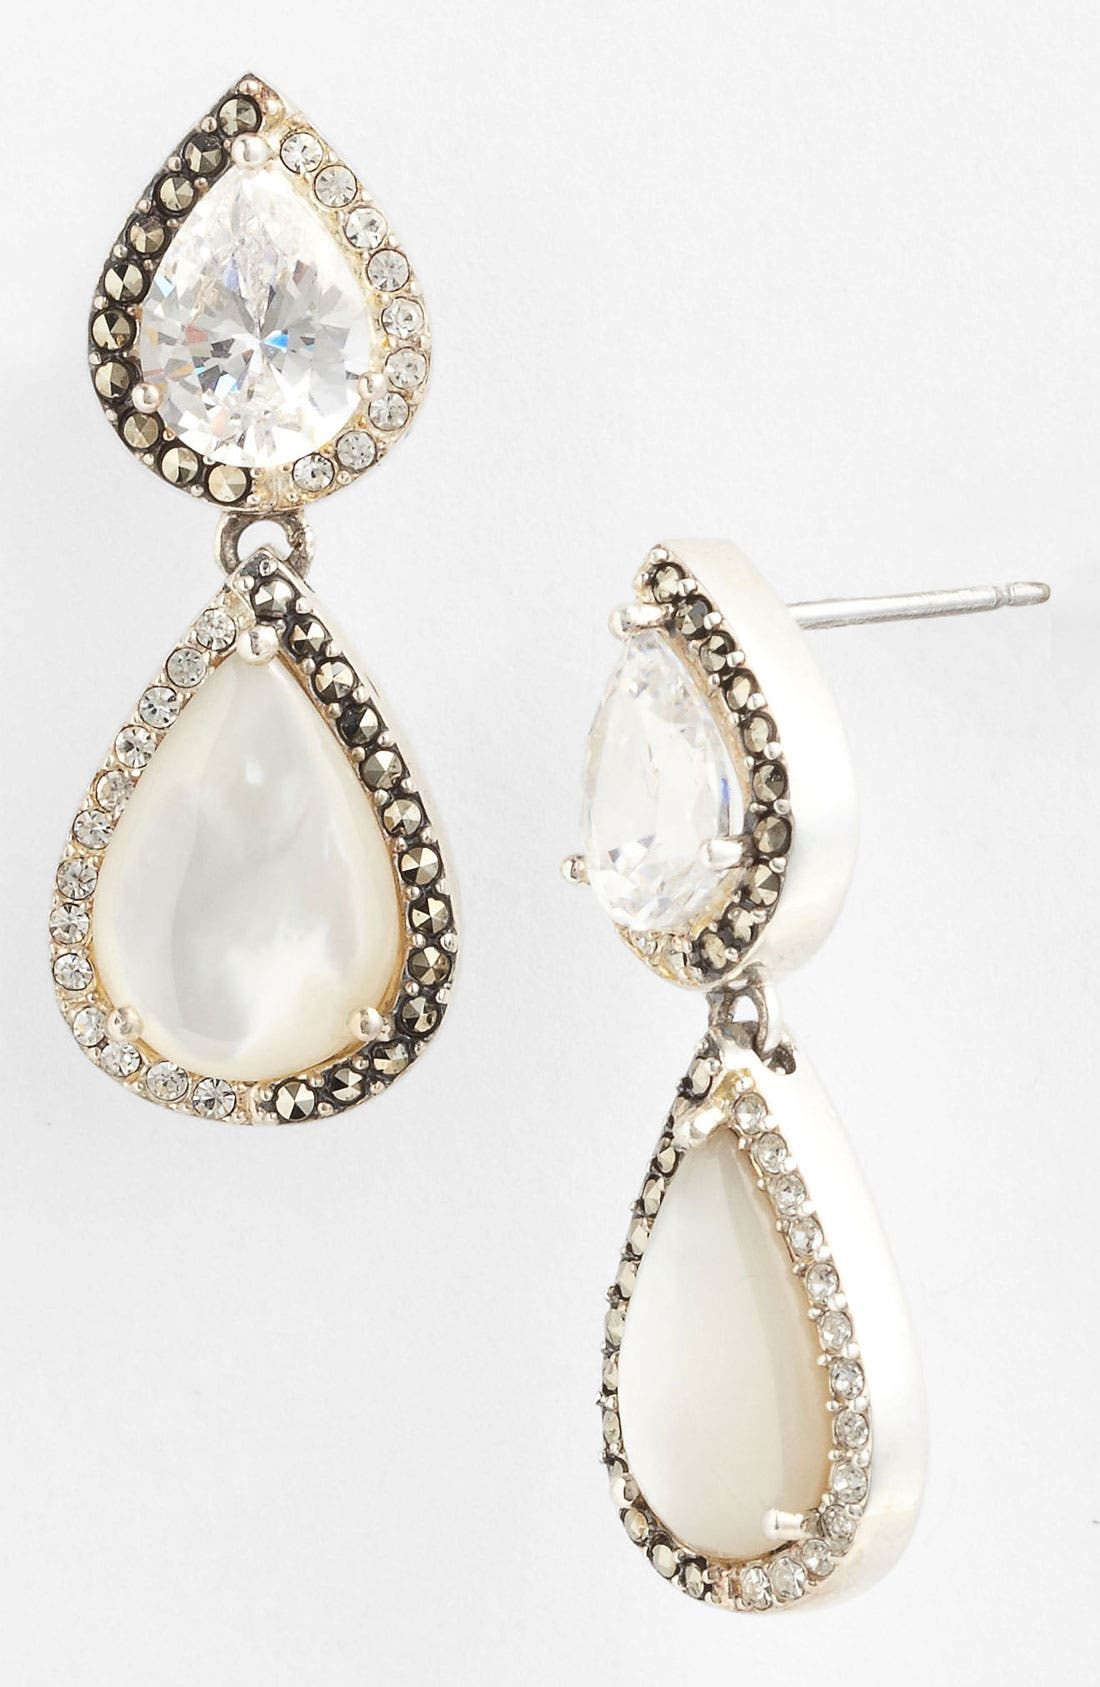 Alternate Image 1 Selected - Judith Jack 'Amore' Double Teardrop Earrings